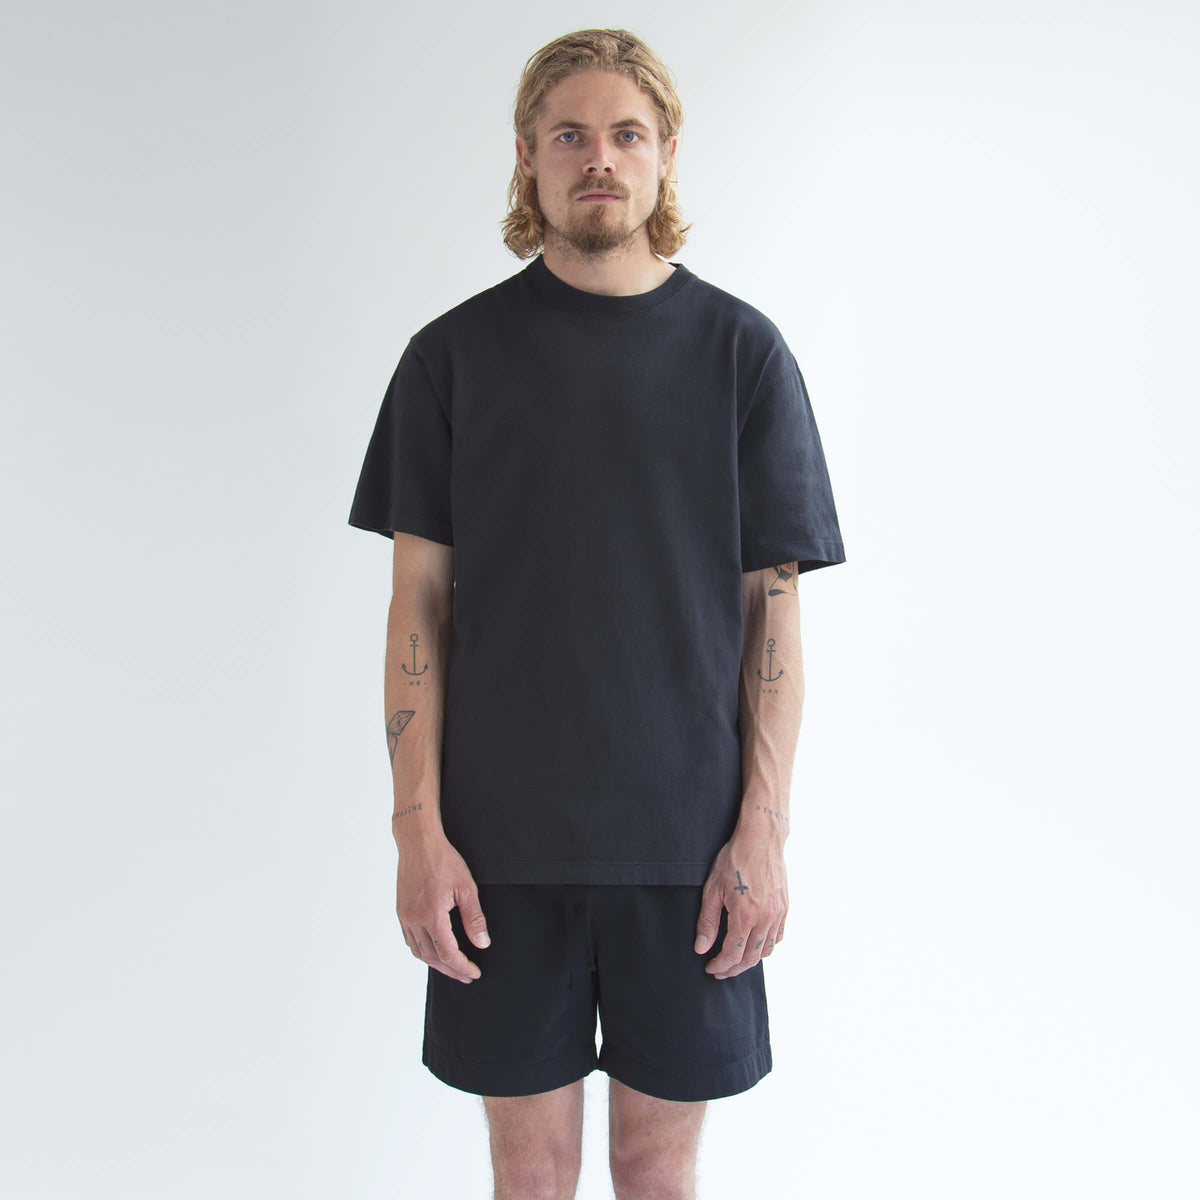 Drawstring Shorts Black - Unrecorded